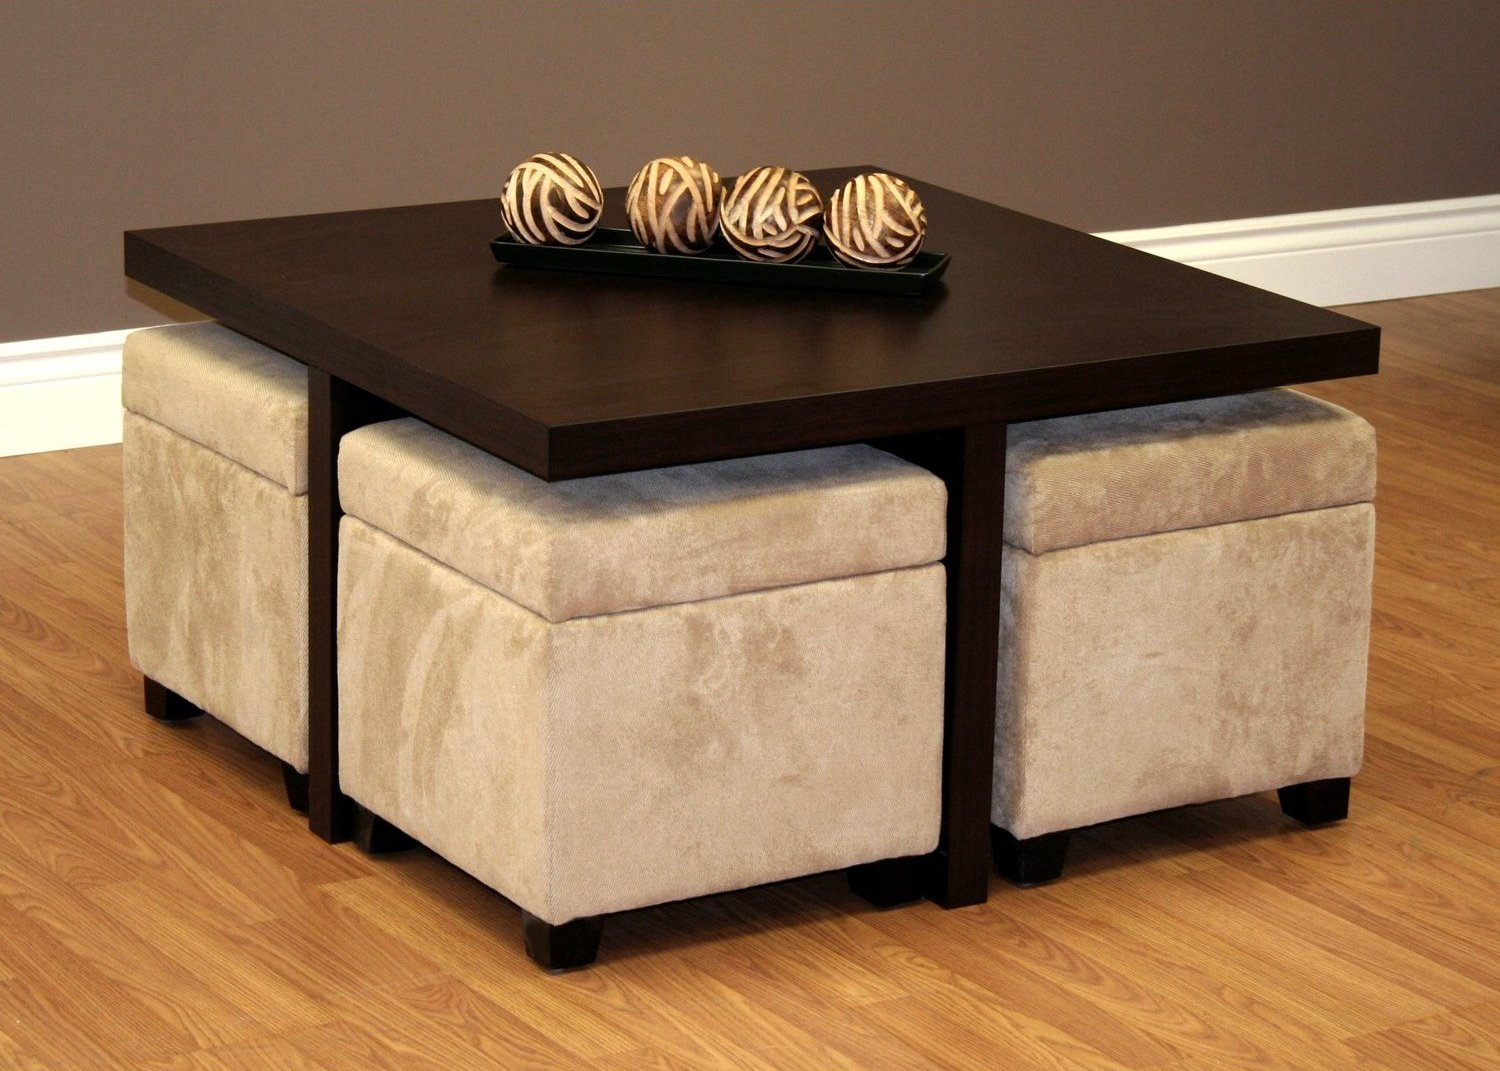 Square Ottomans Completing Dark Wooden Coffee Table with Stools on Laminate Hardwood Flooring near Grey Wall